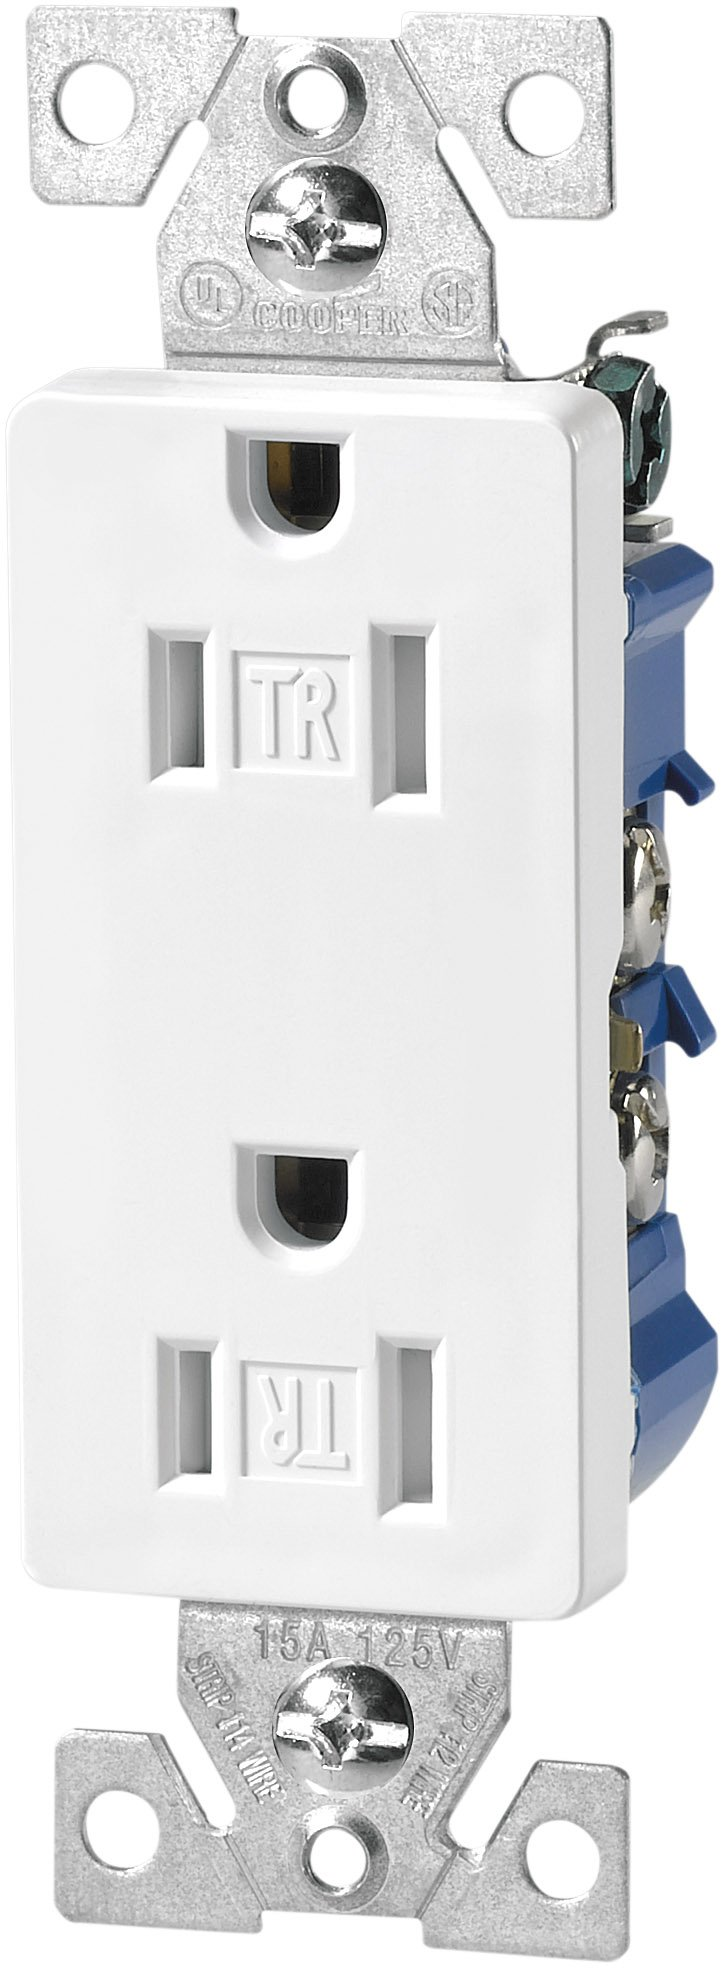 Eaton Tr1107w Tamper Resistant Decorator Duplex Receptacle With 15 Cooper Wiring Devices Amp Usb Charging Electrical Outlet 125 Volt